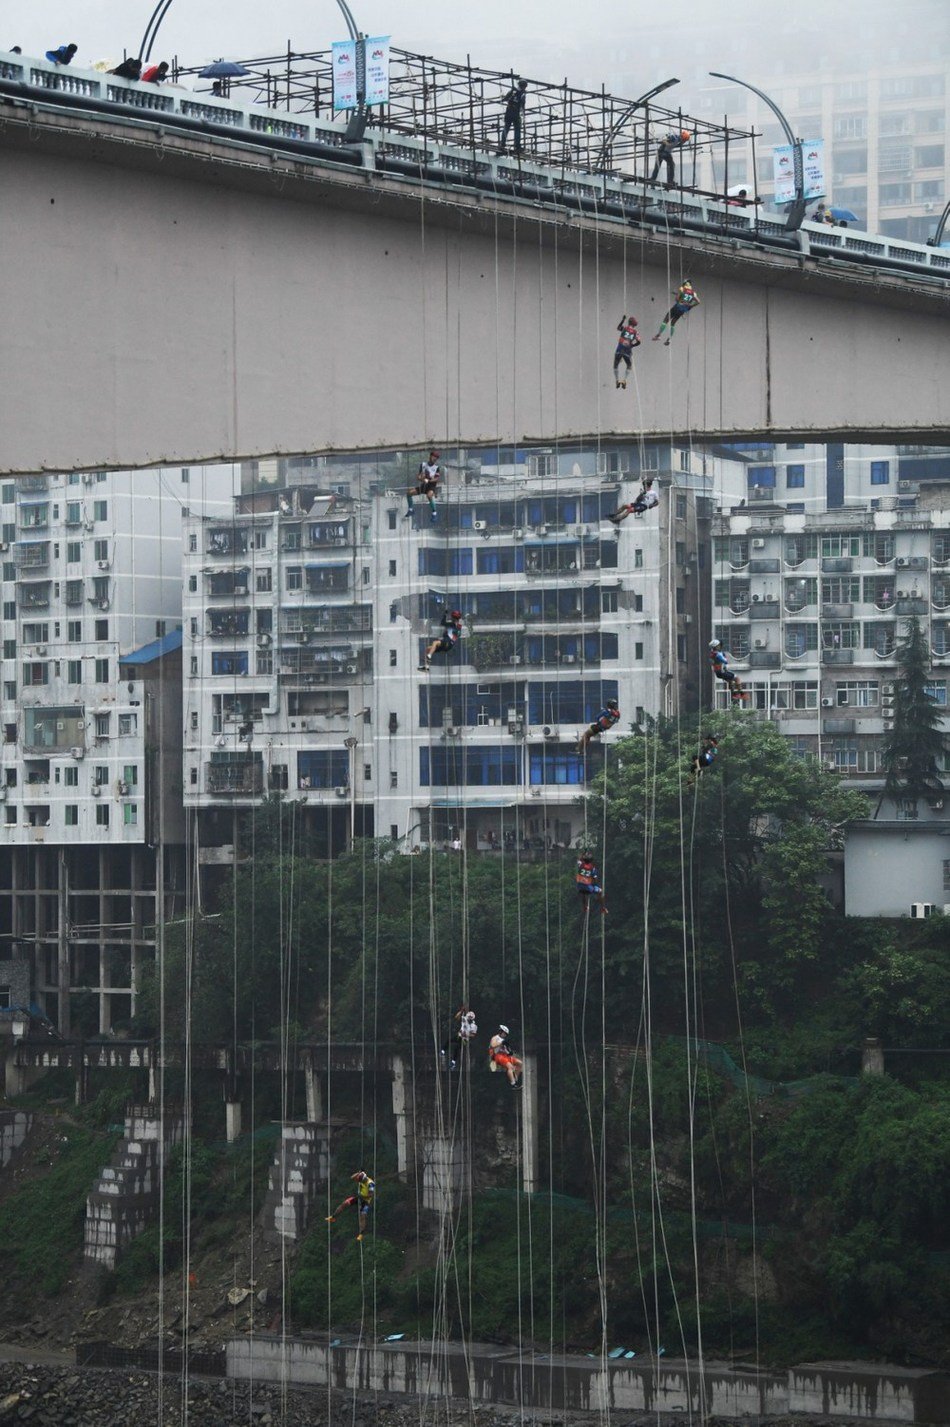 Players are competing in a bridge descent contest on September 18. (PRNewsfoto/Wulong Publicity Dept.)